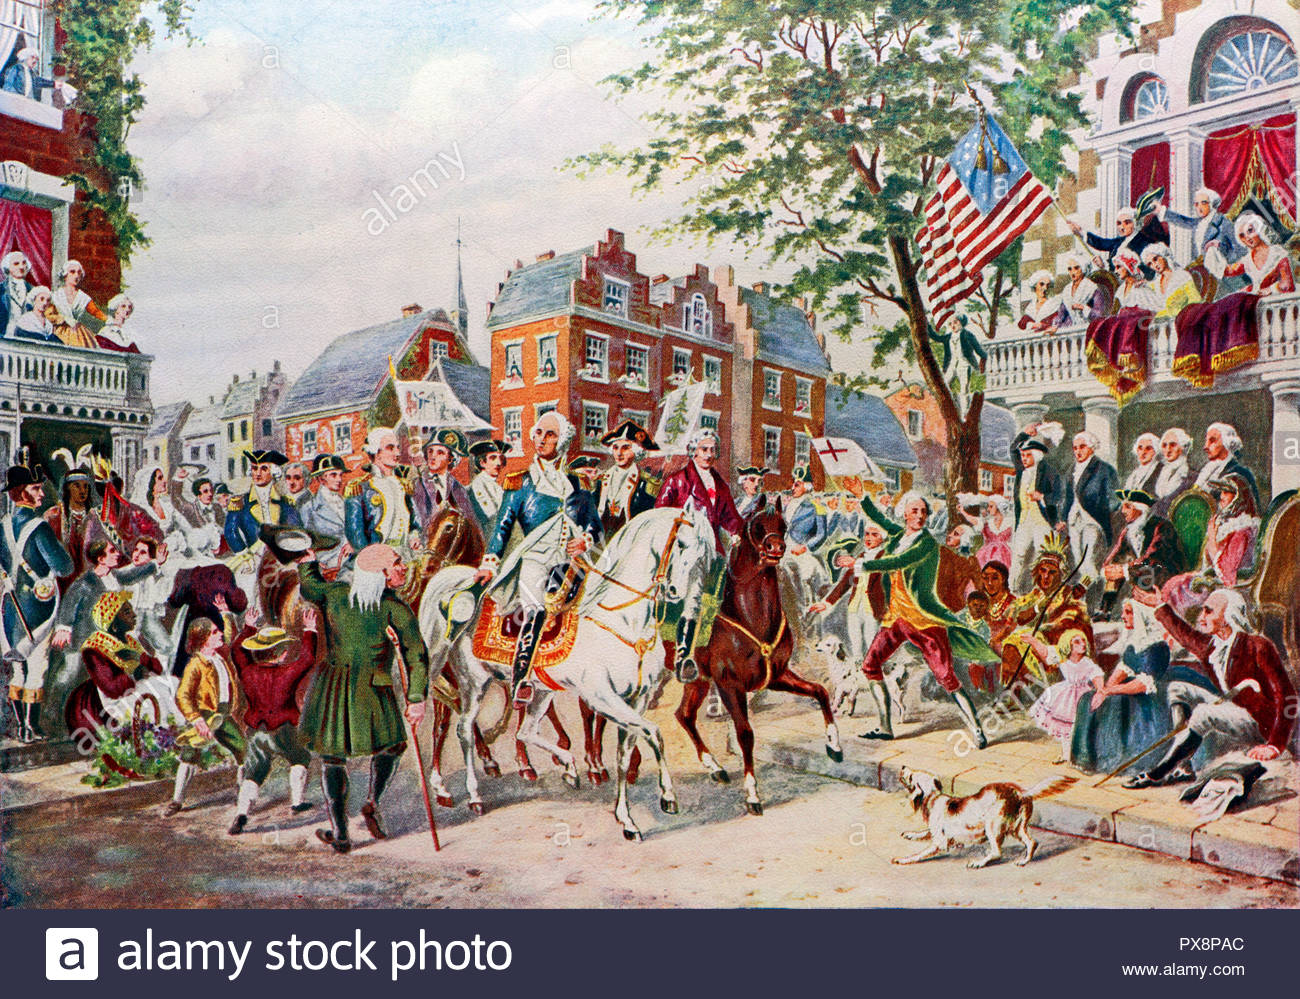 President elect George Washington's entry into New York April 23rd 1789, colour illustration from 1922 - Stock Image